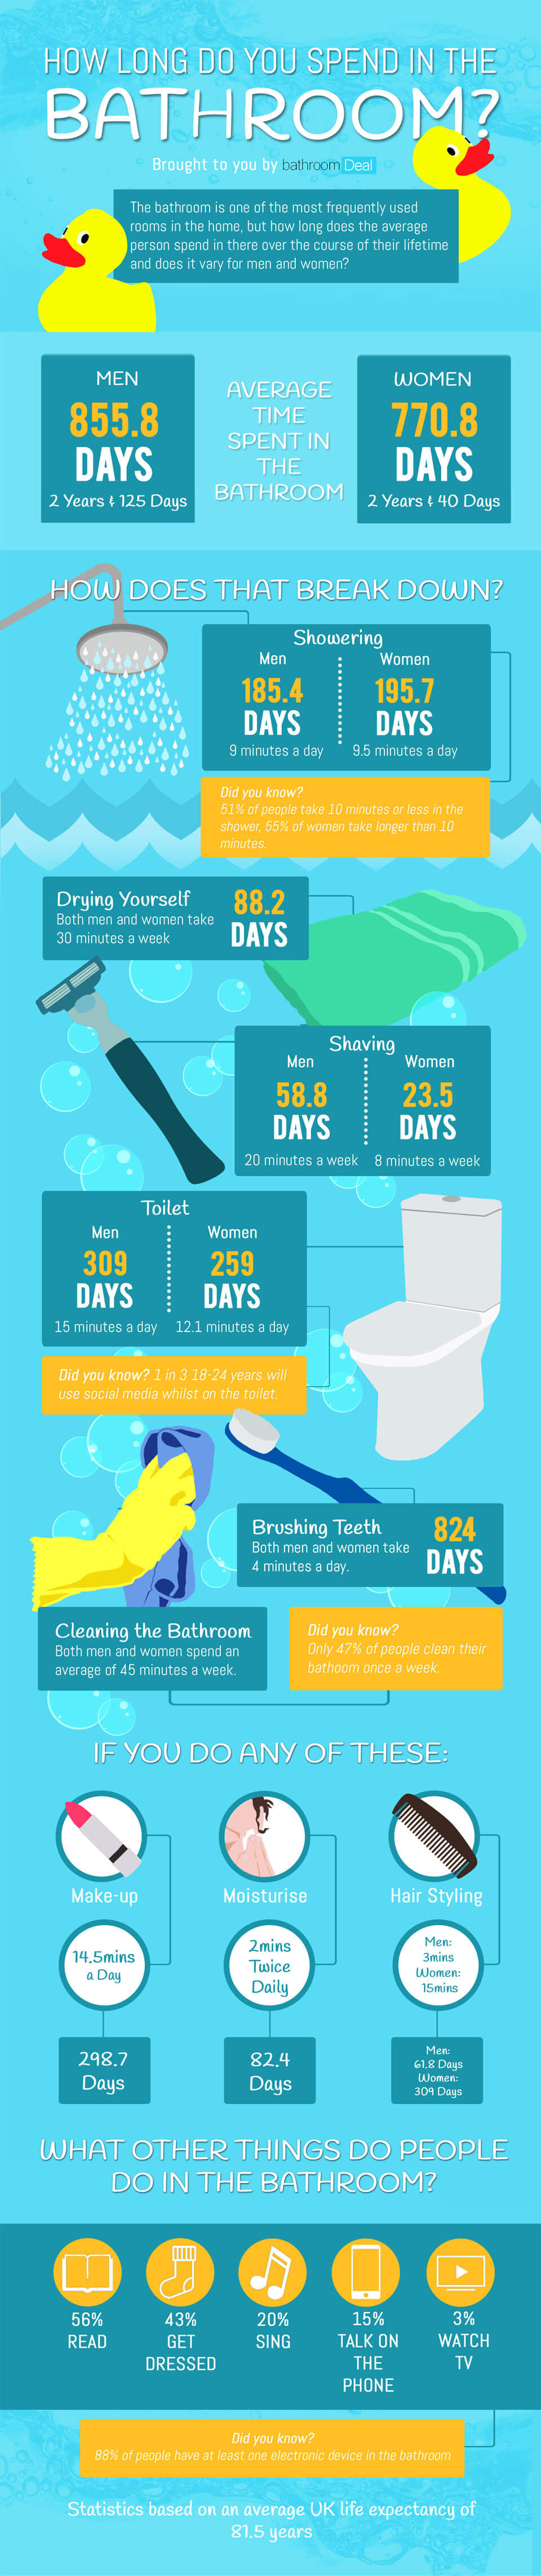 How long you spend in the Bathroom